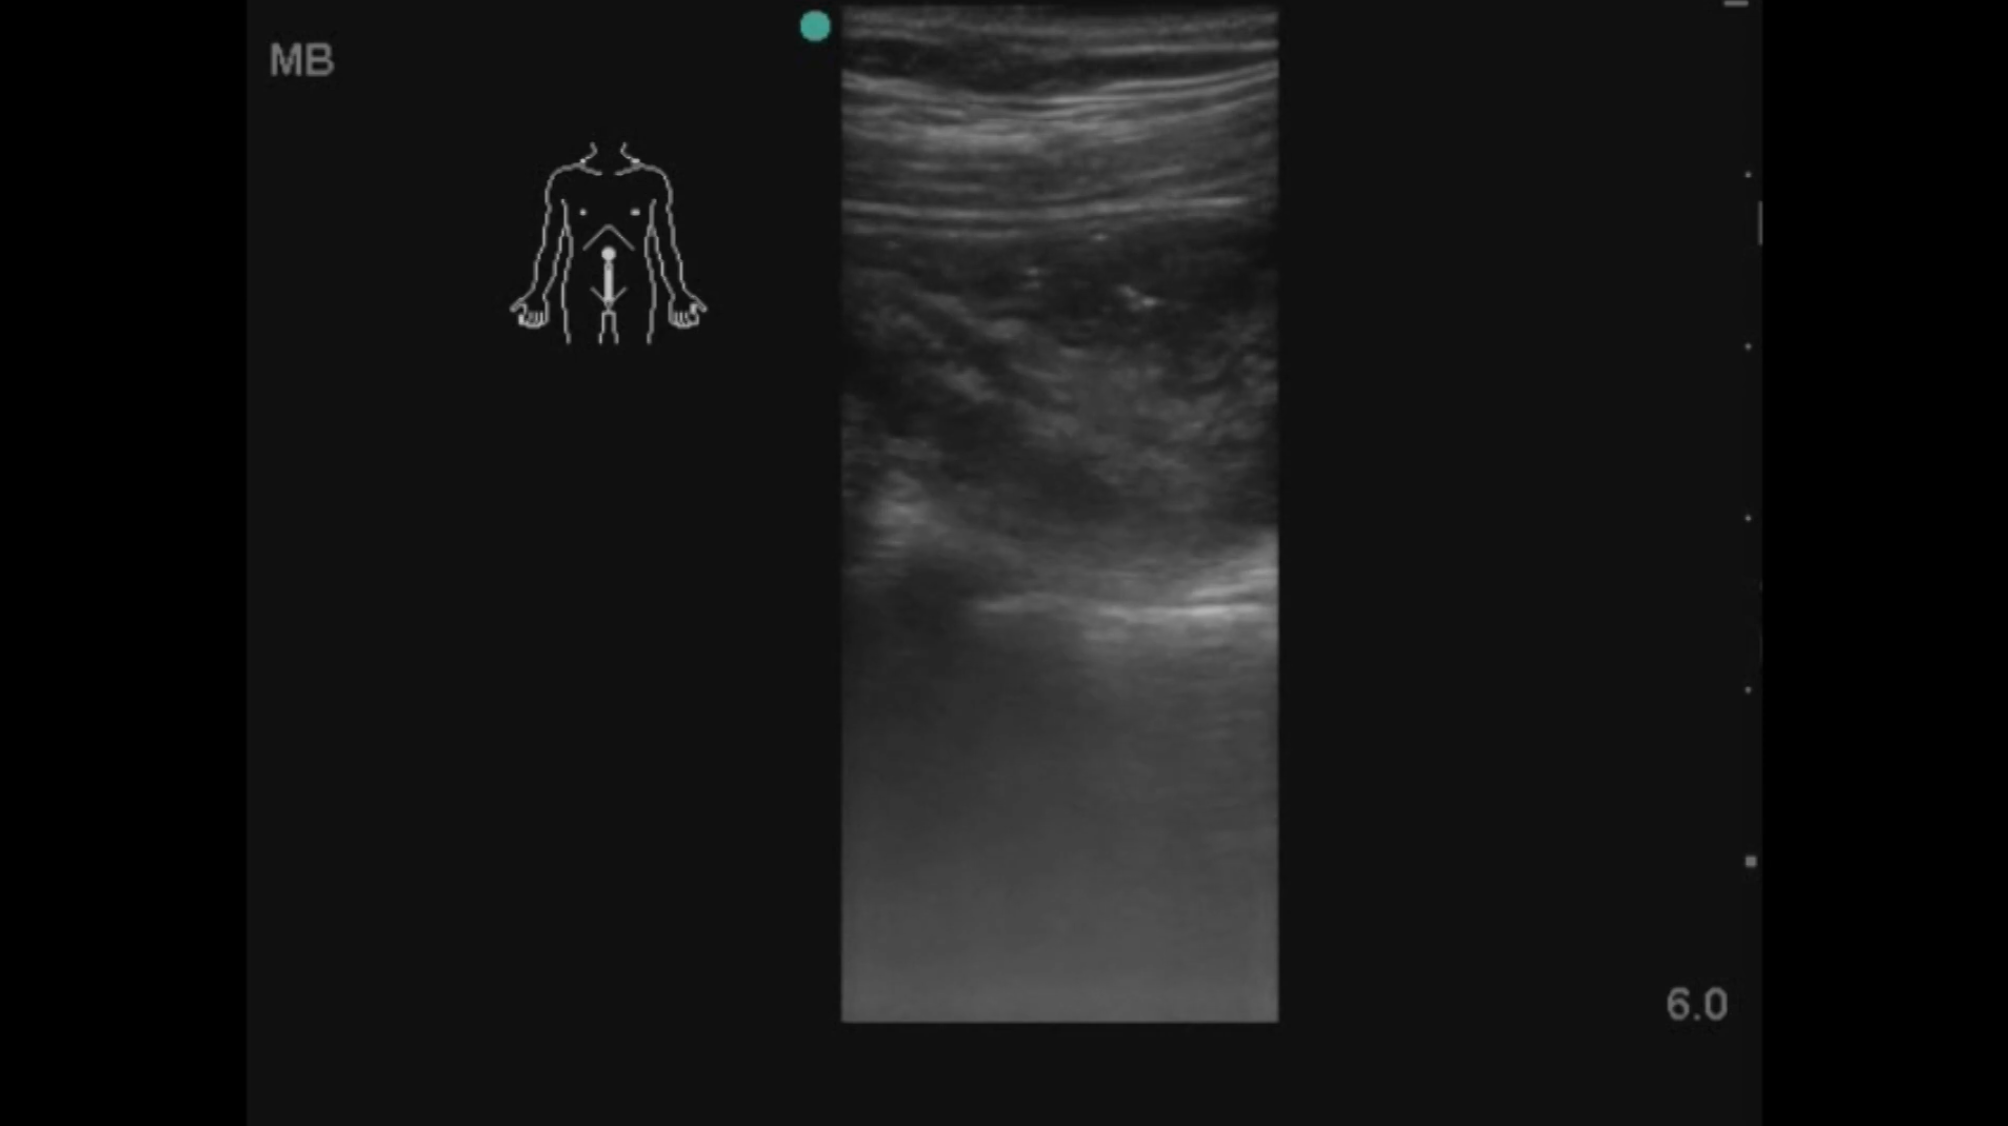 How accurate is point-of-care-ultrasound (POCUS) at diagnosing acute appendicitis?